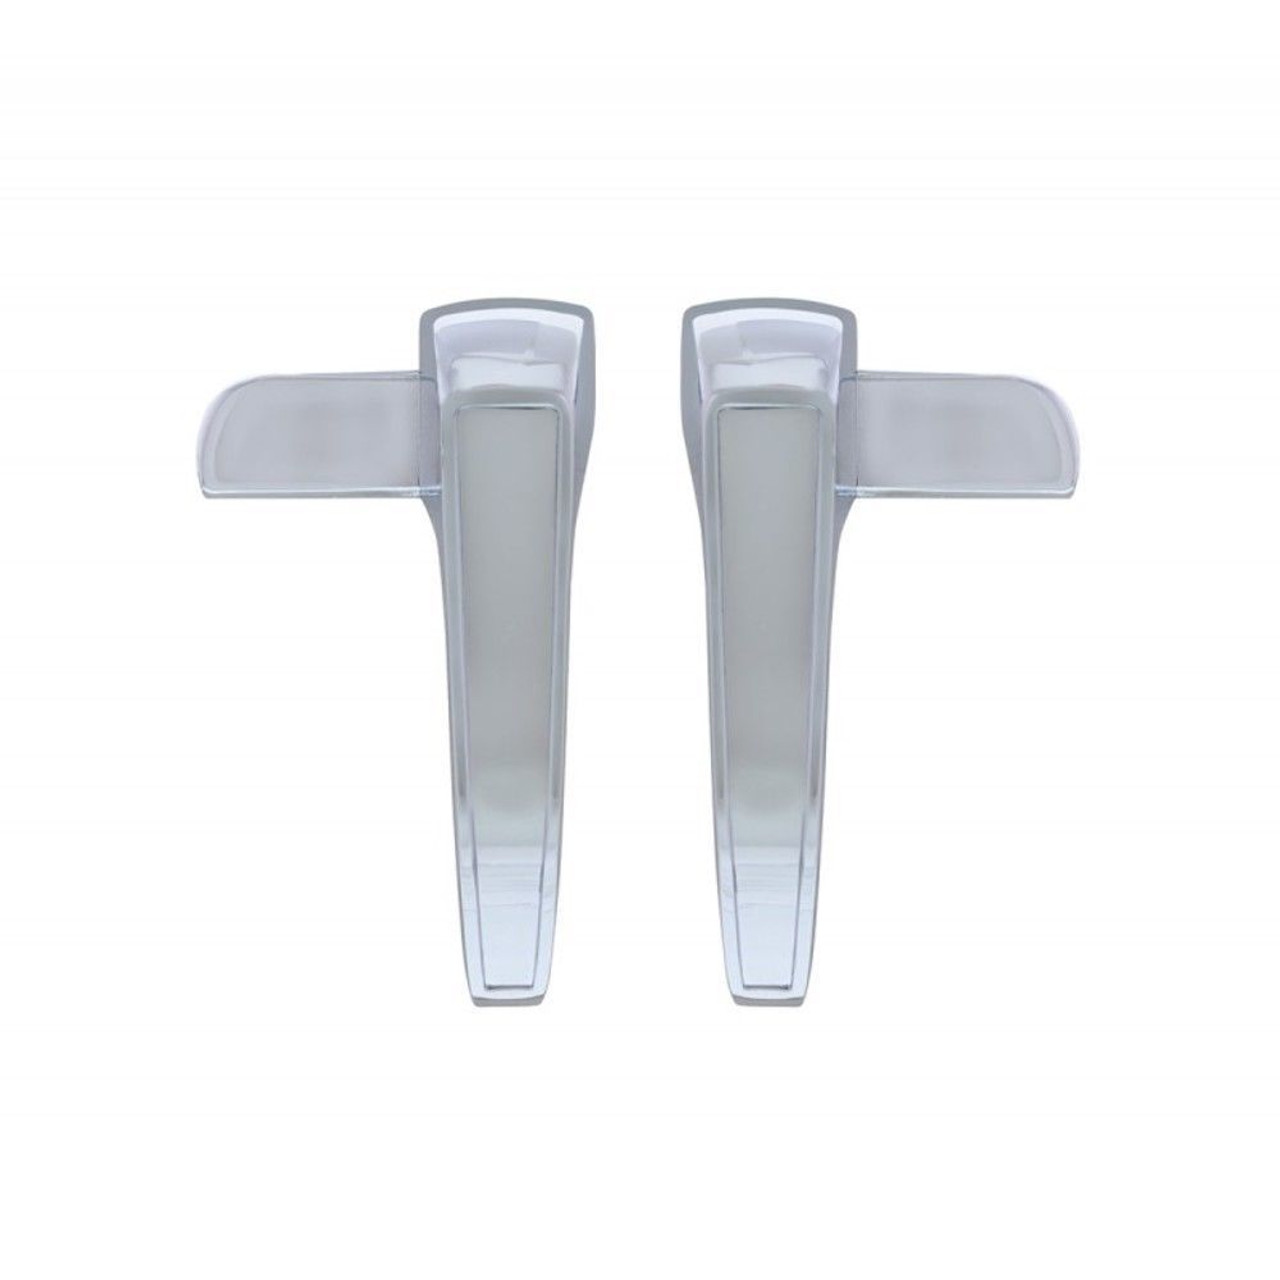 1967 67 Ford Mustang Vent Window Handles